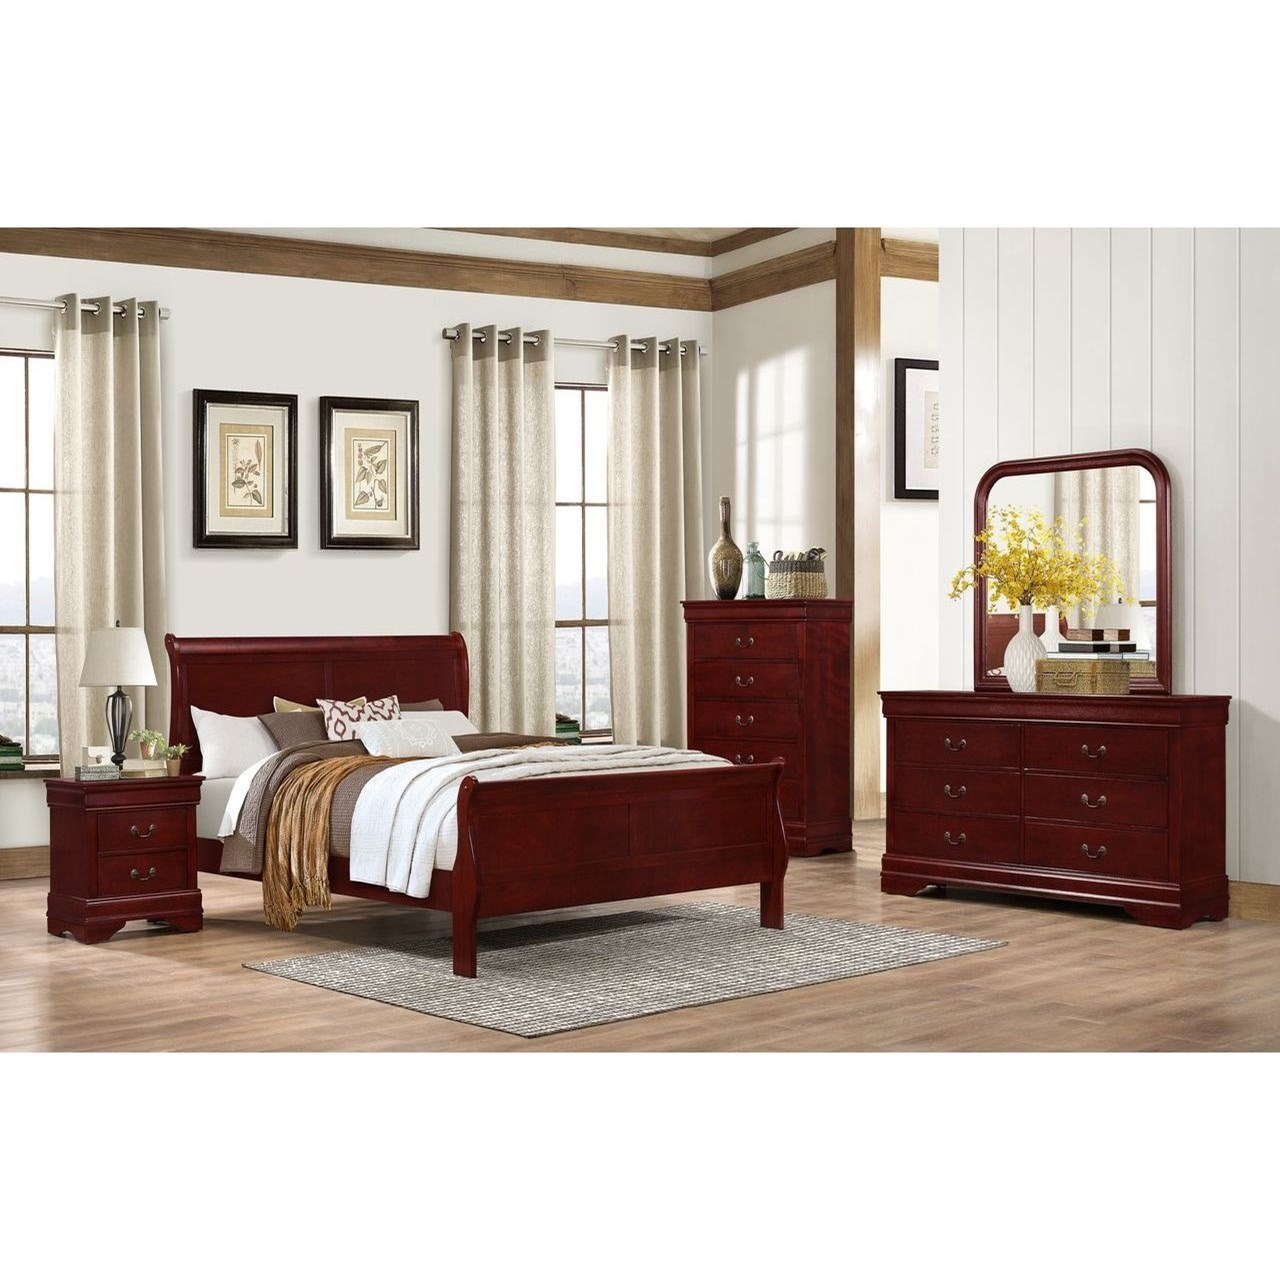 Lifestyle 4937 2 Drawer Nightstand Miskelly Furniture